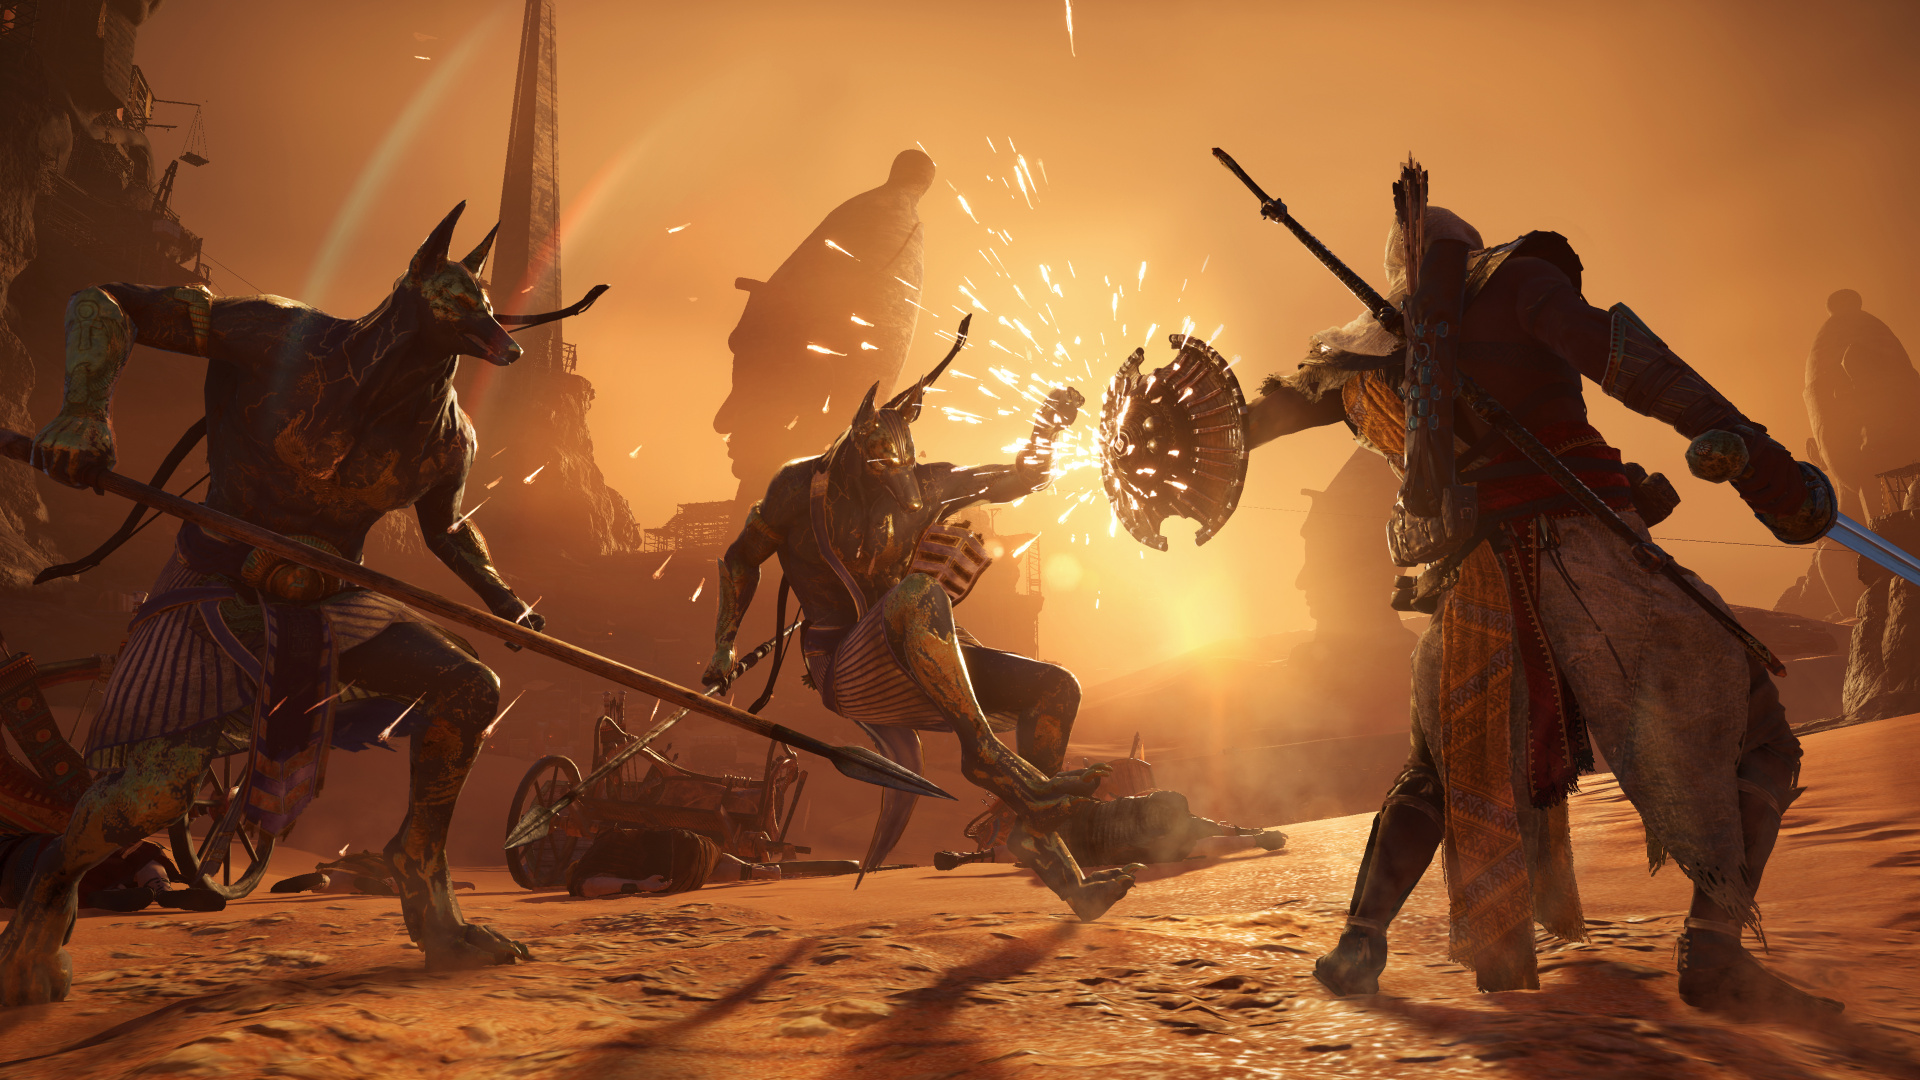 Assassins creed origins curse of the pharaohs review ps4 push assassins creed origins curse of the pharaohs review screenshot 3 of 3 malvernweather Choice Image